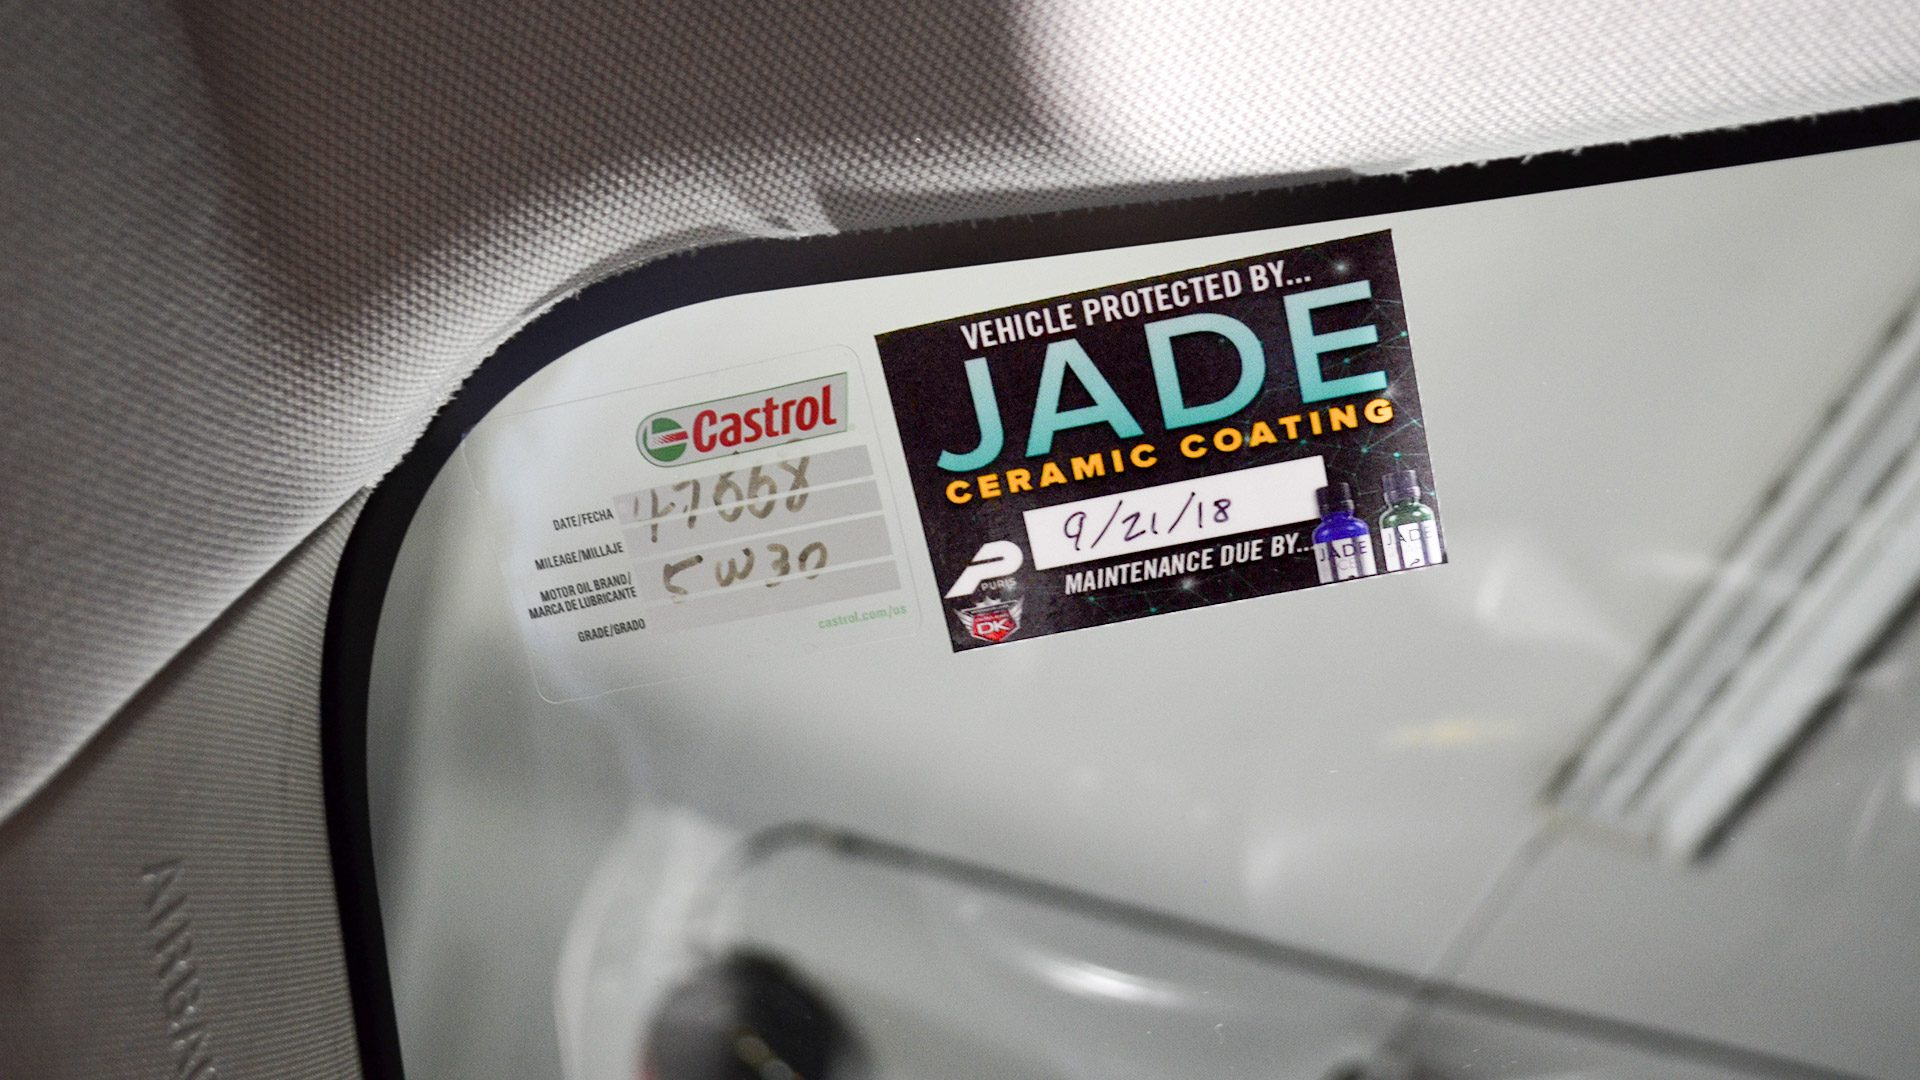 Jade Ceramic Coating Window Cling Stickers